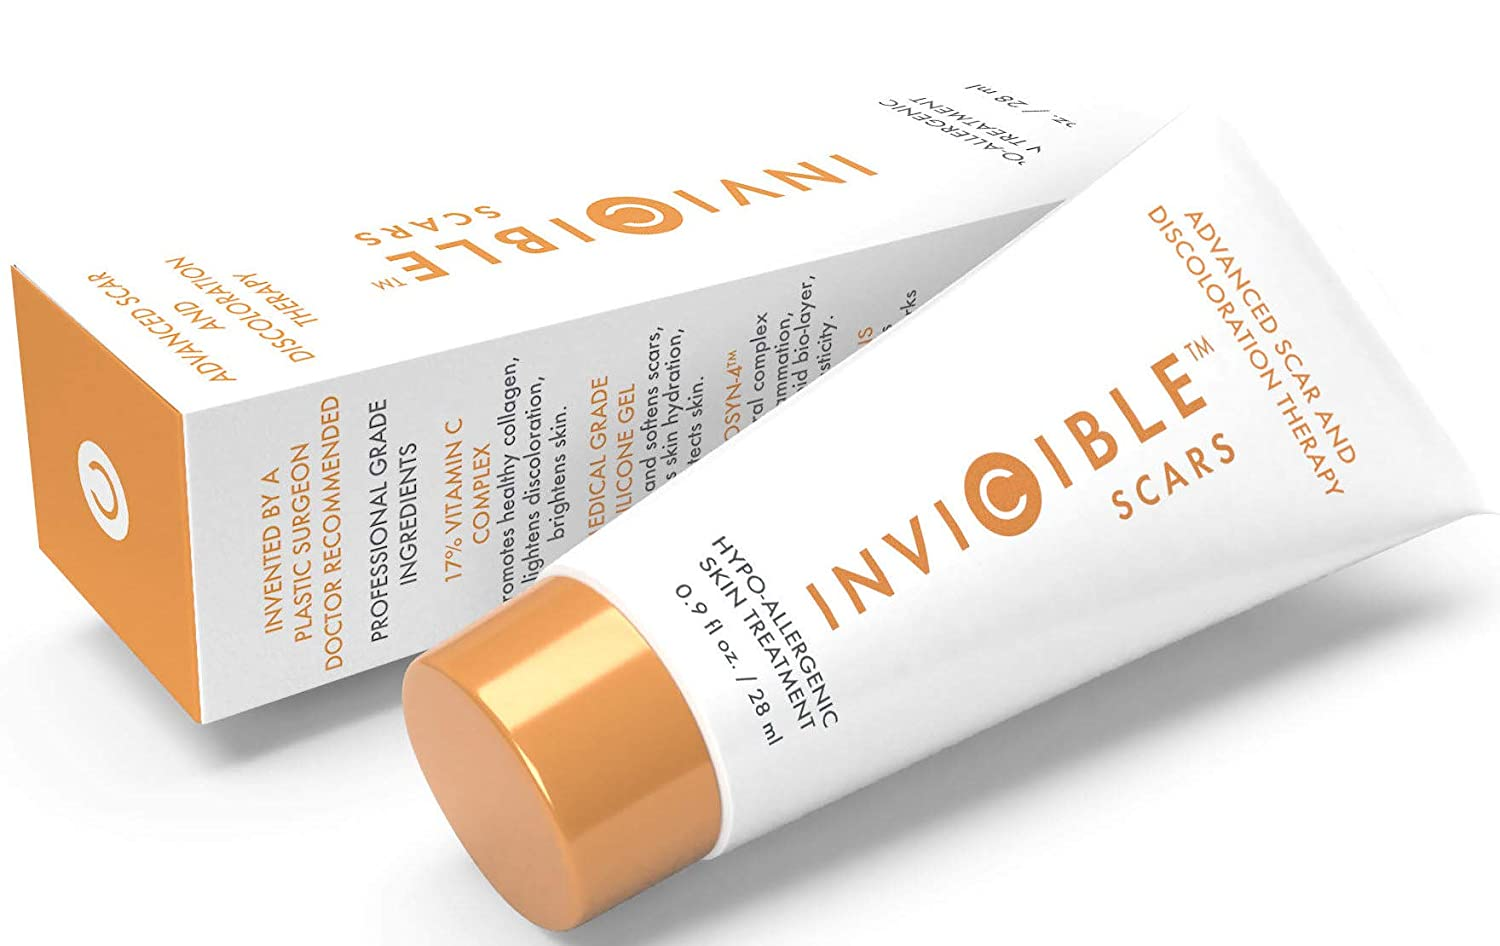 InviCible Scars Advanced Skin Treatment & Medicated Primer 17% Vitamin C Moisturizes & Improves Skin Imperfections Matte Finish Base For Makeup. 9 Fl Oz, Created By A Plastic Surgeon, Made In America